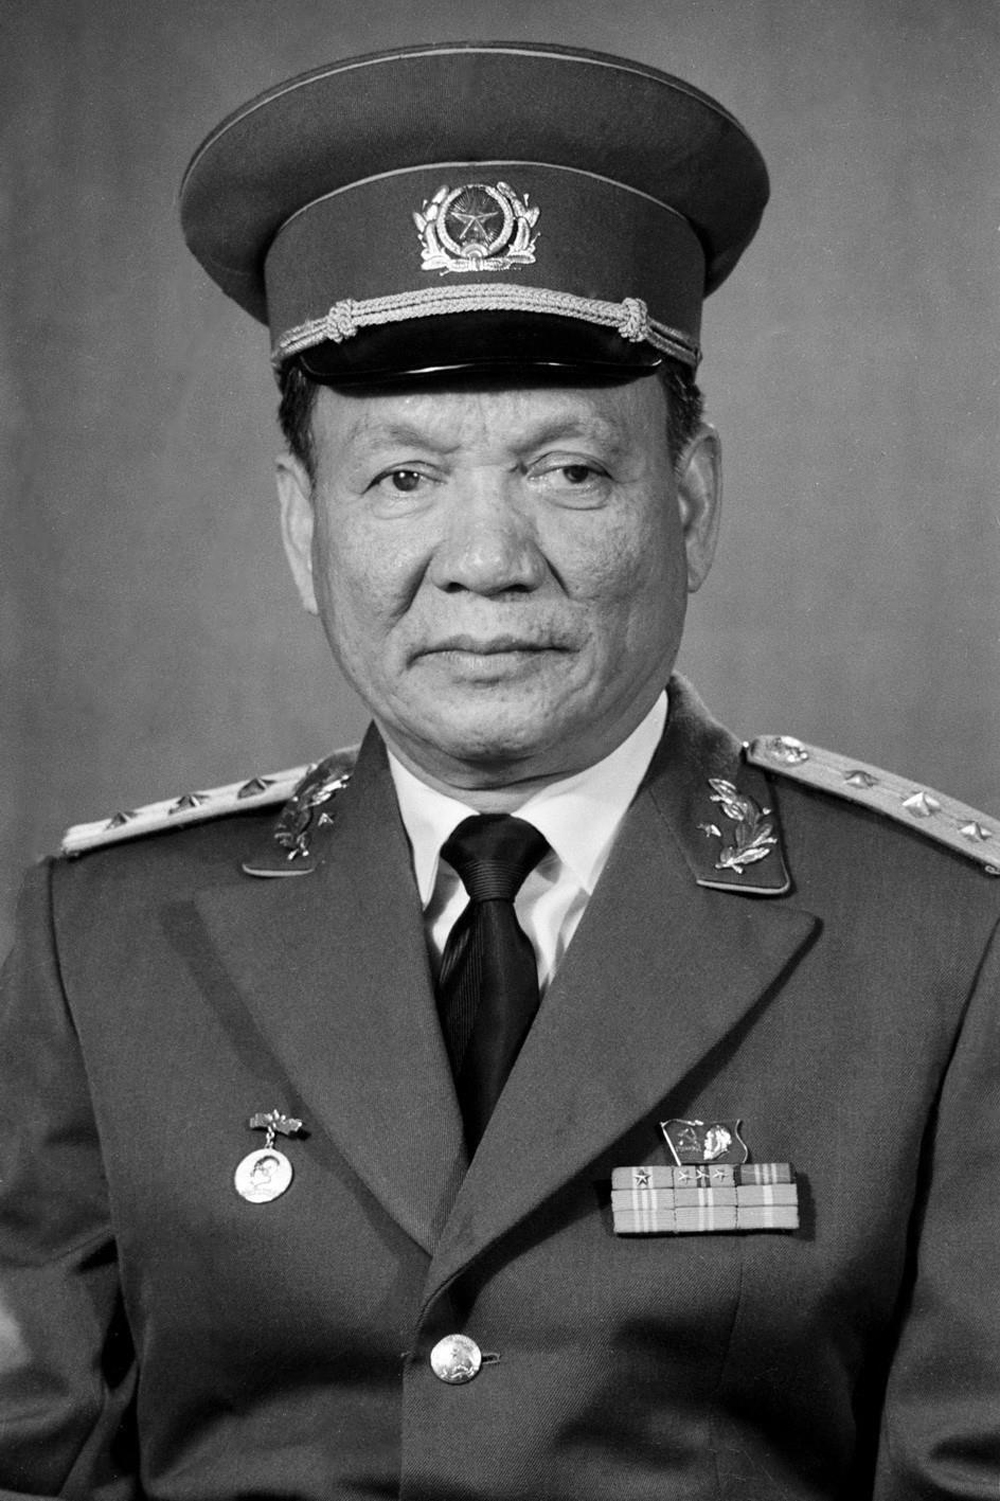 Former President, Le Duc Anh, passes away, illness and old age, National Commission, Health Services, Senior Officials